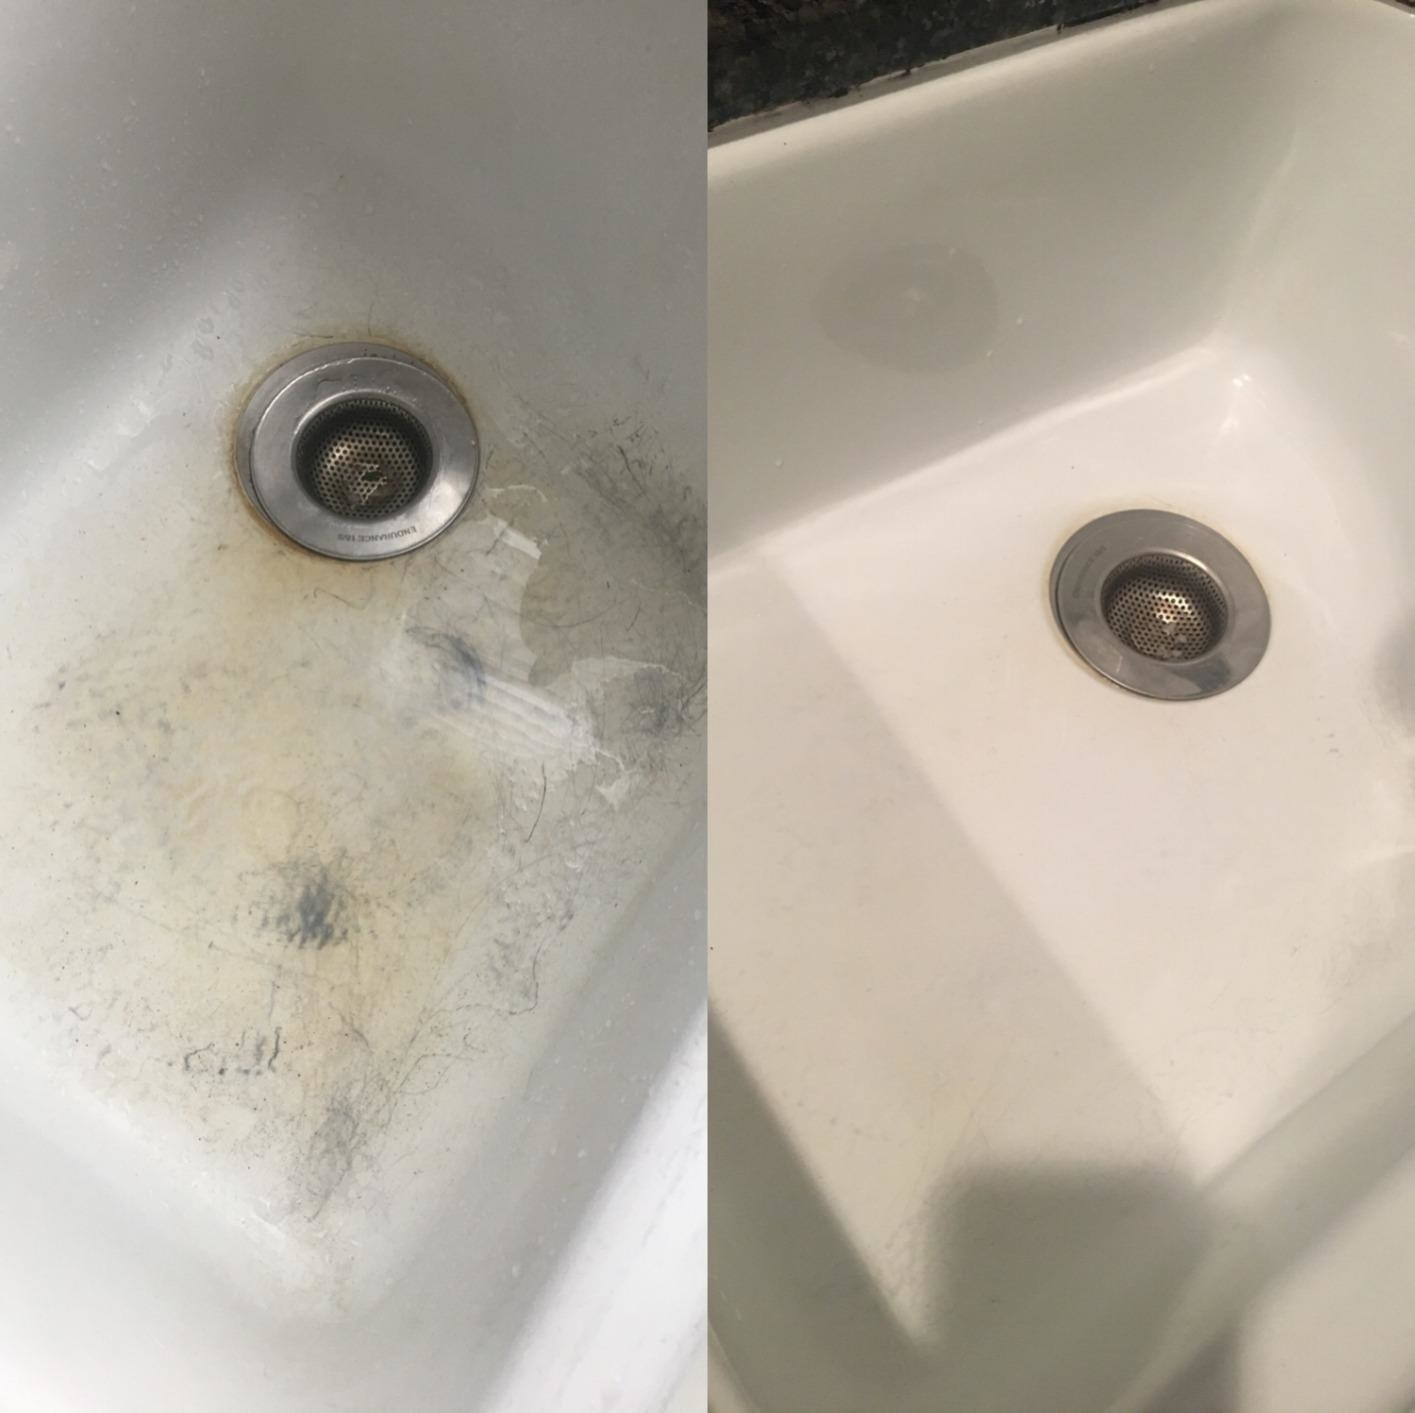 Reviewer photo of a white porcelain sink before and after being cleaned with the cleanser. The before photo shows staining and scratching while the after photo shows the sink completely clean